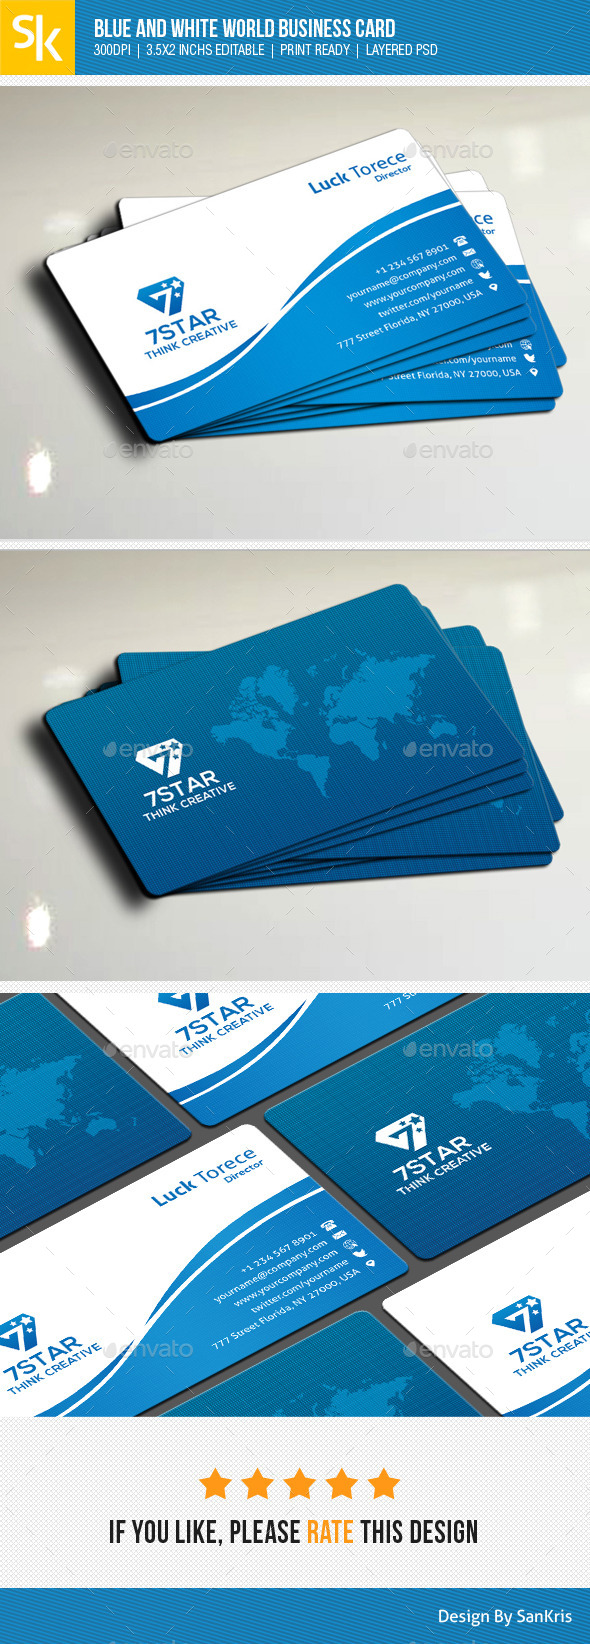 GraphicRiver Blue And White World Business Card 11110814